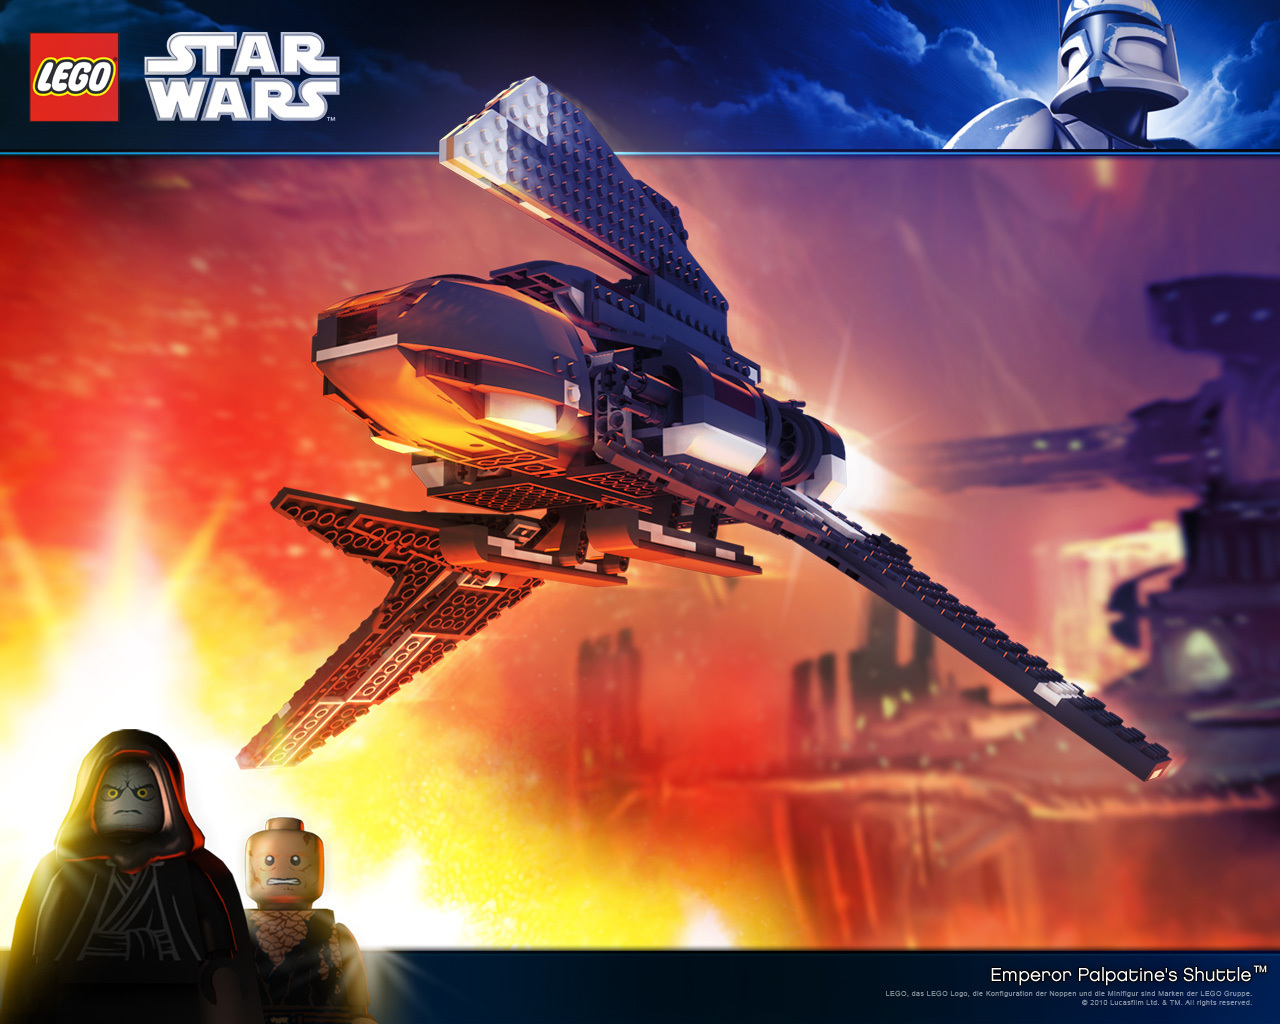 lego star wars images lego star wars hd wallpaper and background photos 23157036. Black Bedroom Furniture Sets. Home Design Ideas